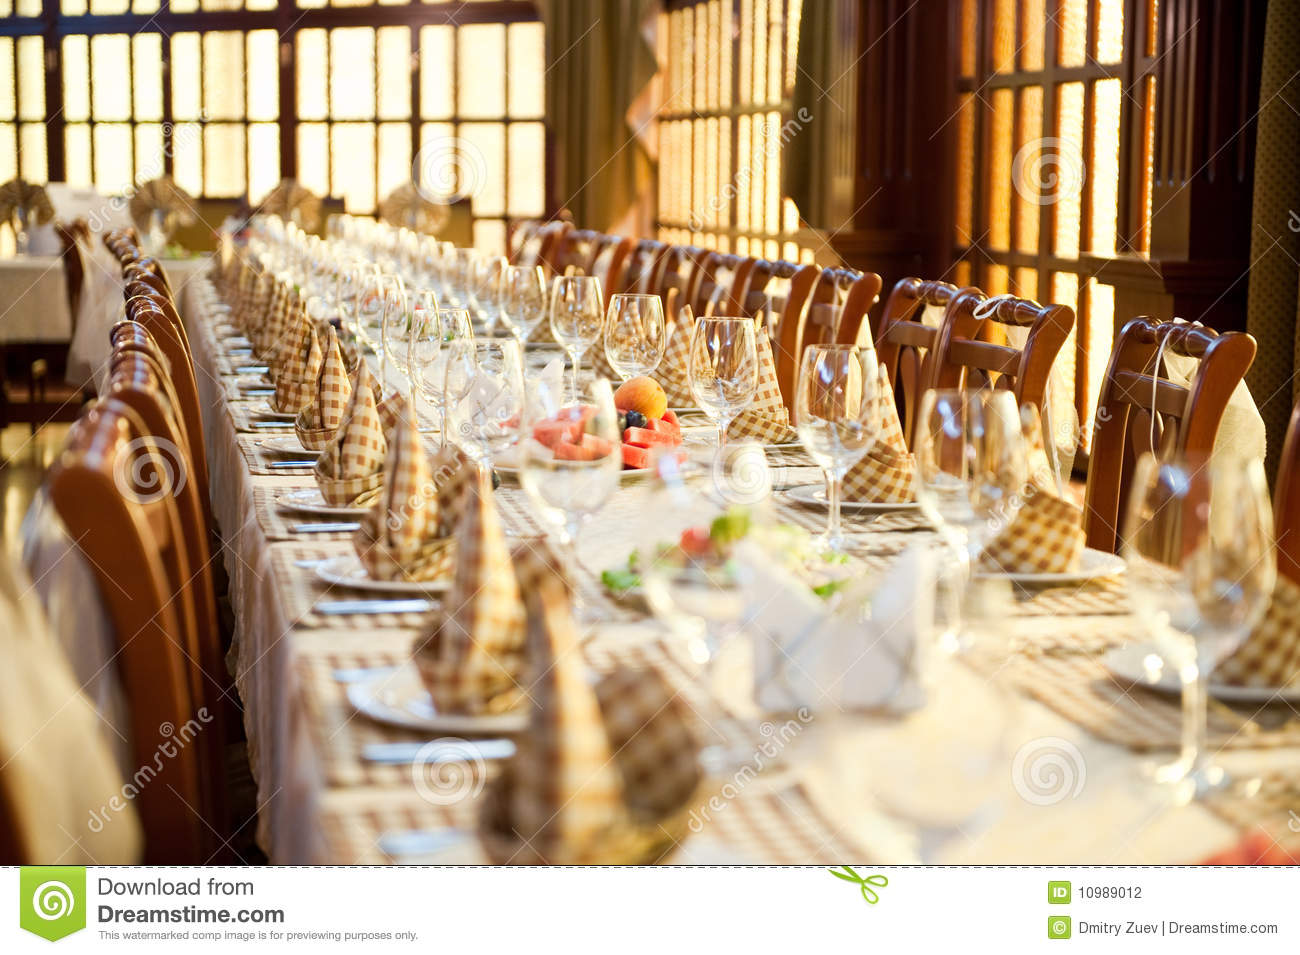 Banquet Hall Stock Photography Image 10989012 : banquet hall 10989012 from www.dreamstime.com size 1300 x 955 jpeg 187kB